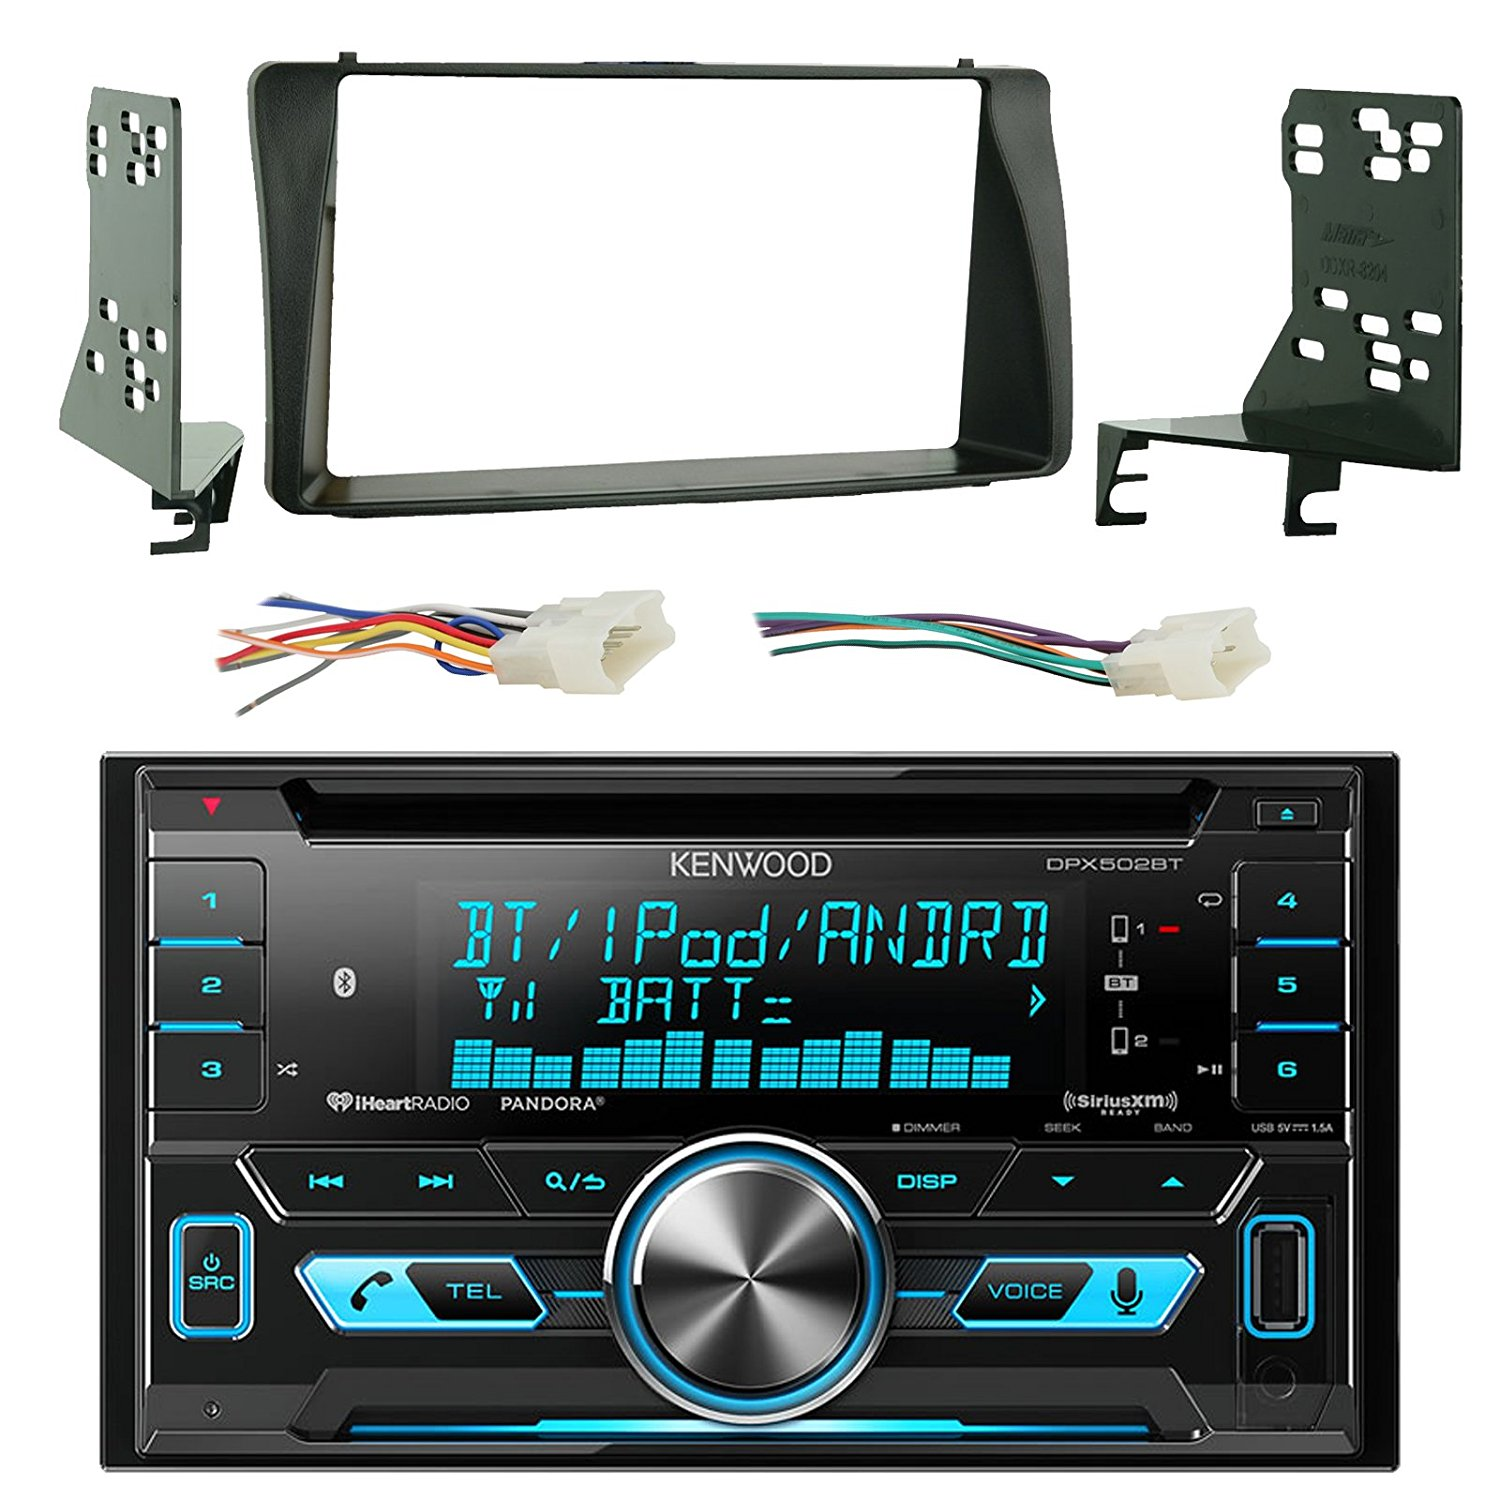 Cheap Kenwood Radio Wiring Diagram, find Kenwood Radio ... on sub wiring diagram, dnx5120 wiring diagram, kenwood double din remote control, kenwood double din honda, cd player wiring diagram, speakers wiring diagram, alpine wiring diagram, tomtom wiring diagram, car wiring diagram, pioneer wiring diagram,